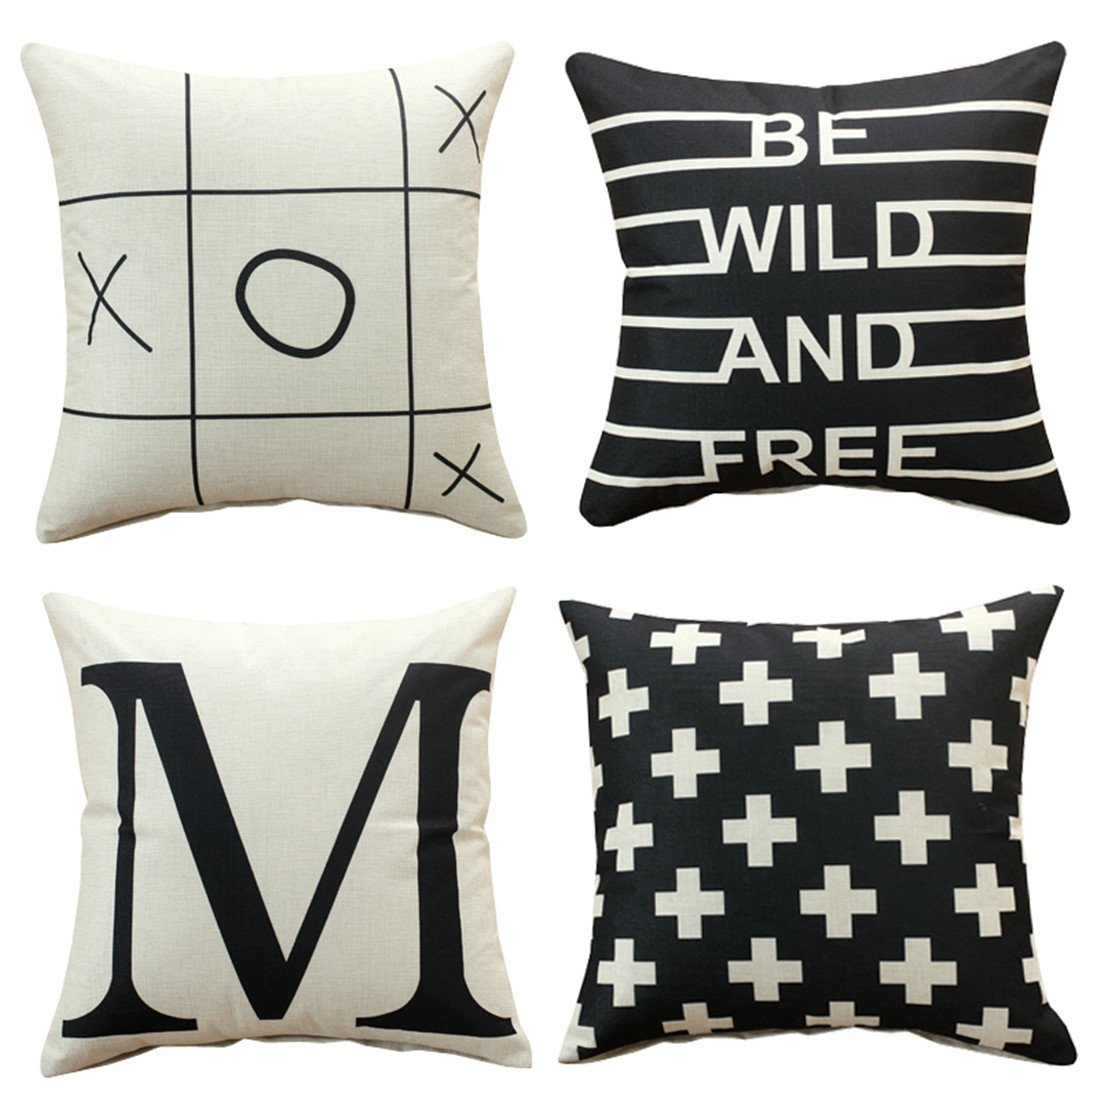 Sunday praise set of 4cotton linen decorative throw pillow covers simple geometricenglish letters design accent handmade 18x18 inch square cushion cover